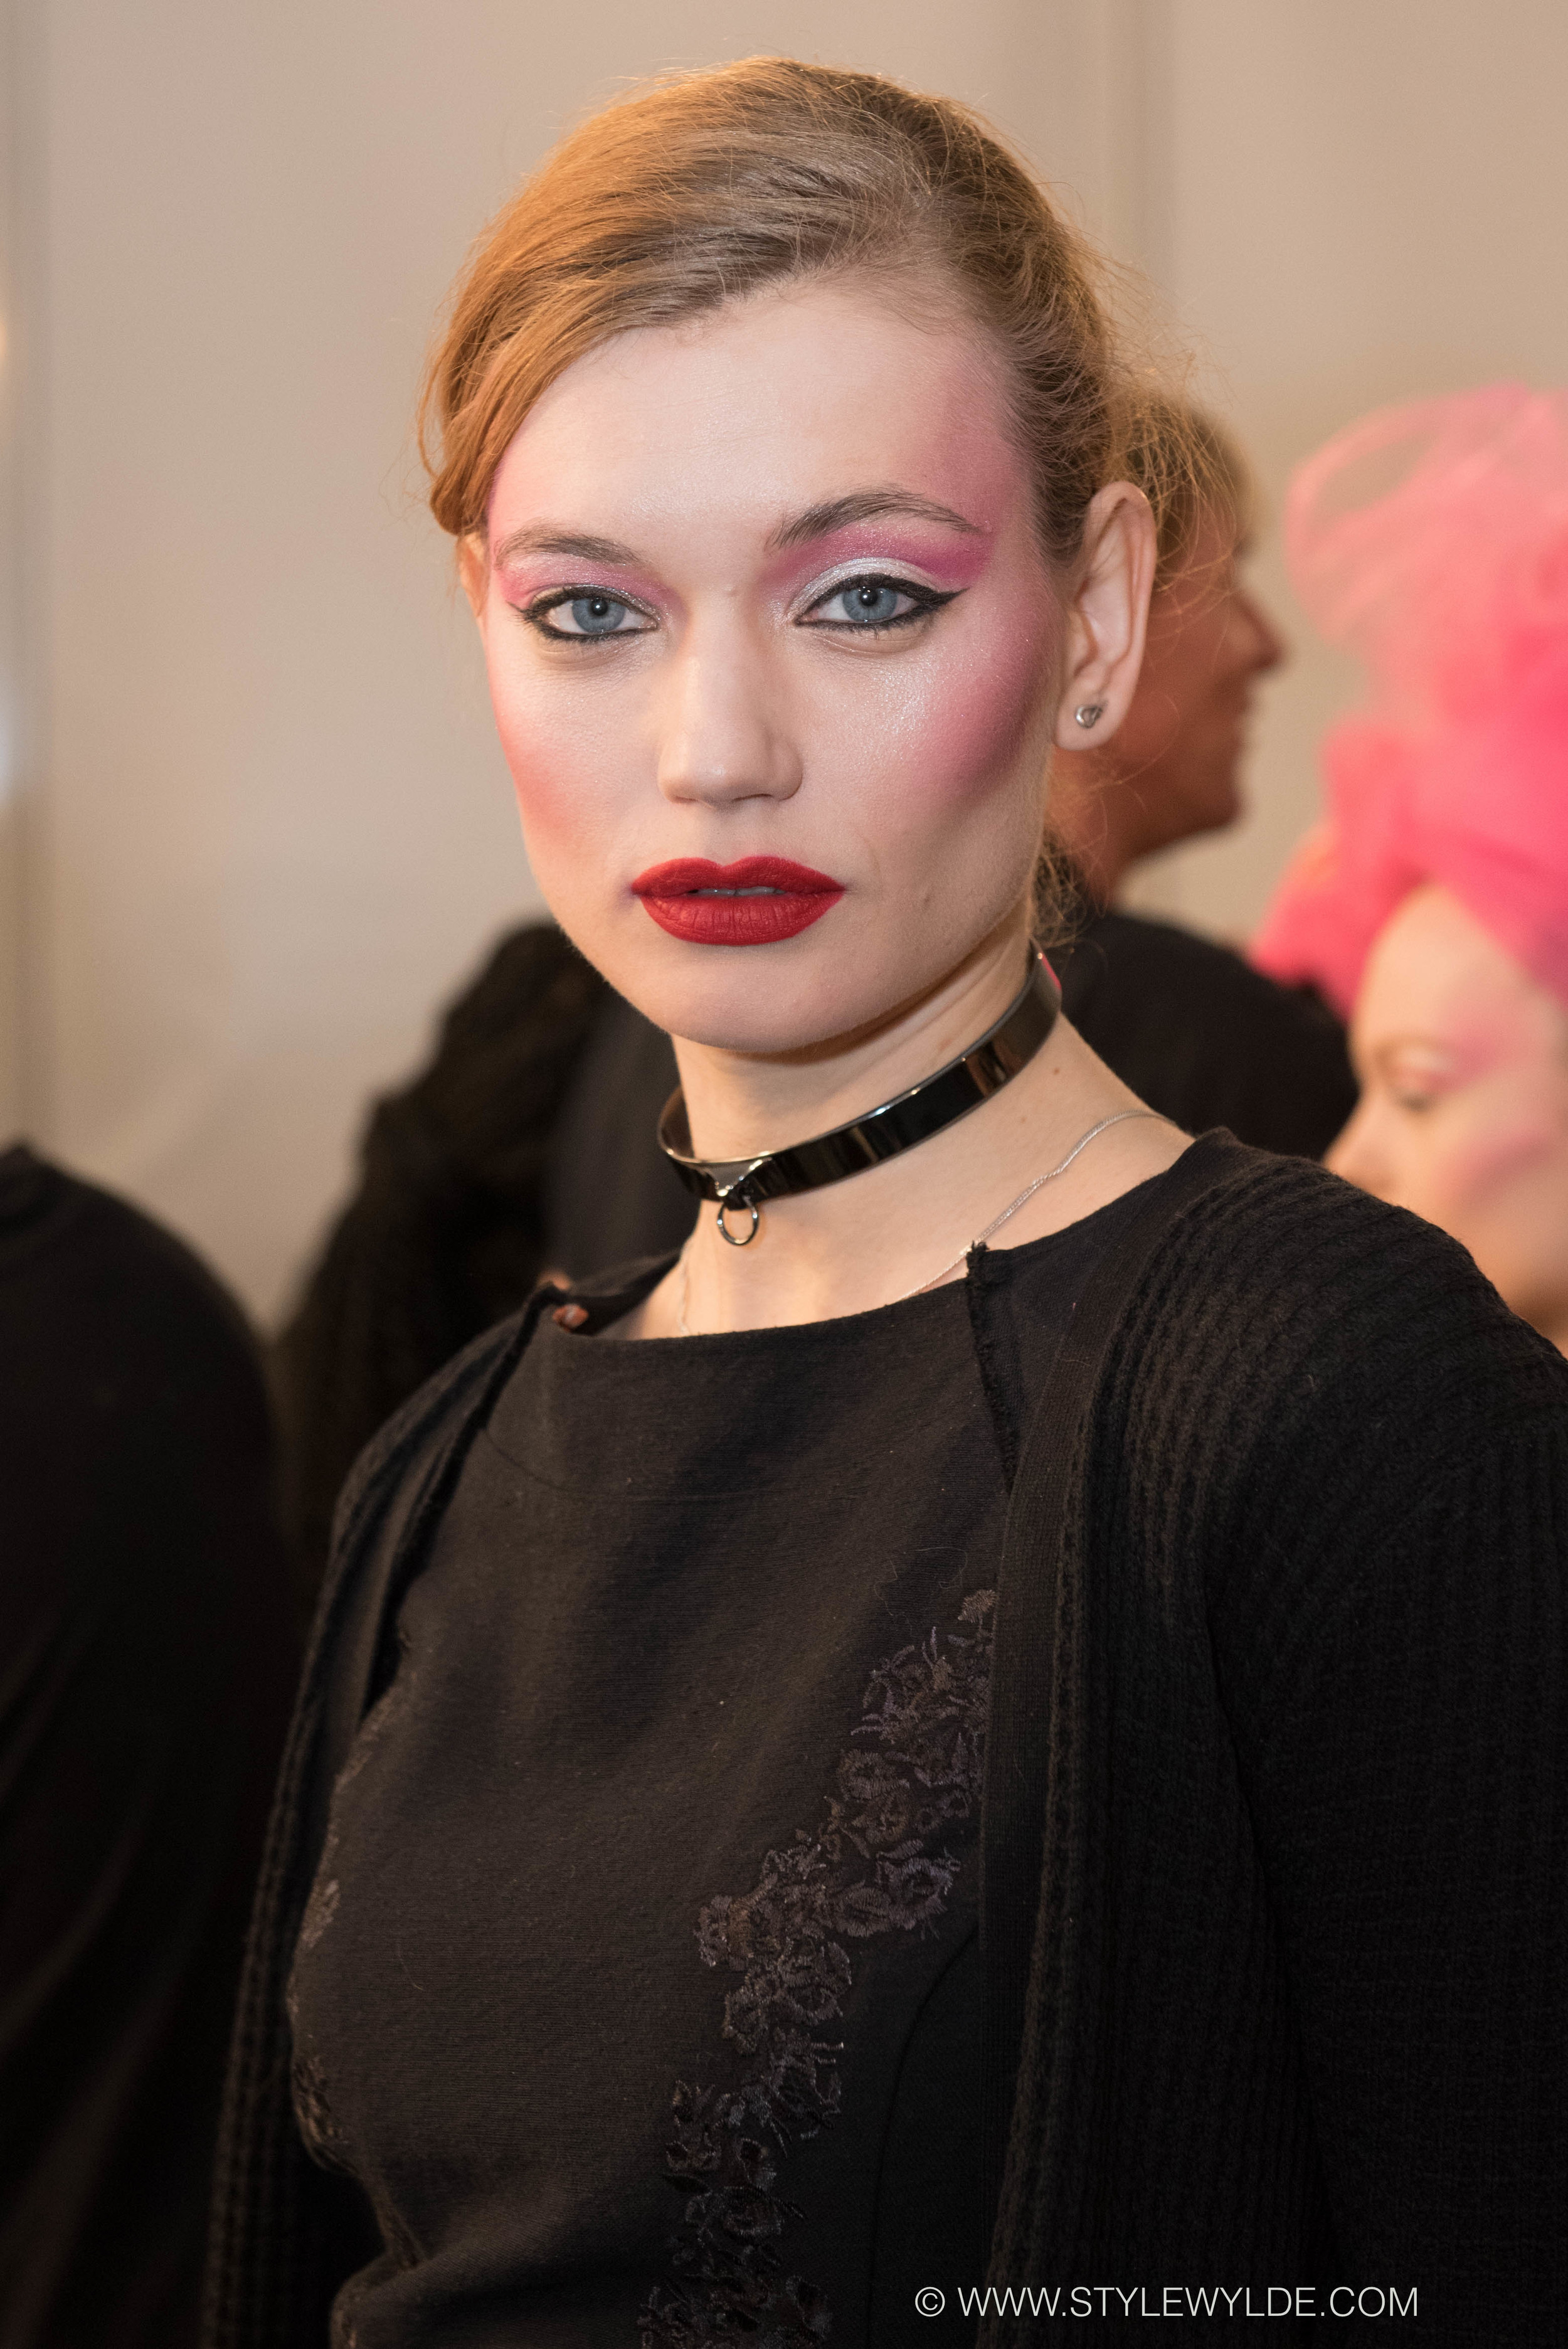 StyleWylde - The Blonds - Bkstg _colorcorrect-1-2.jpg